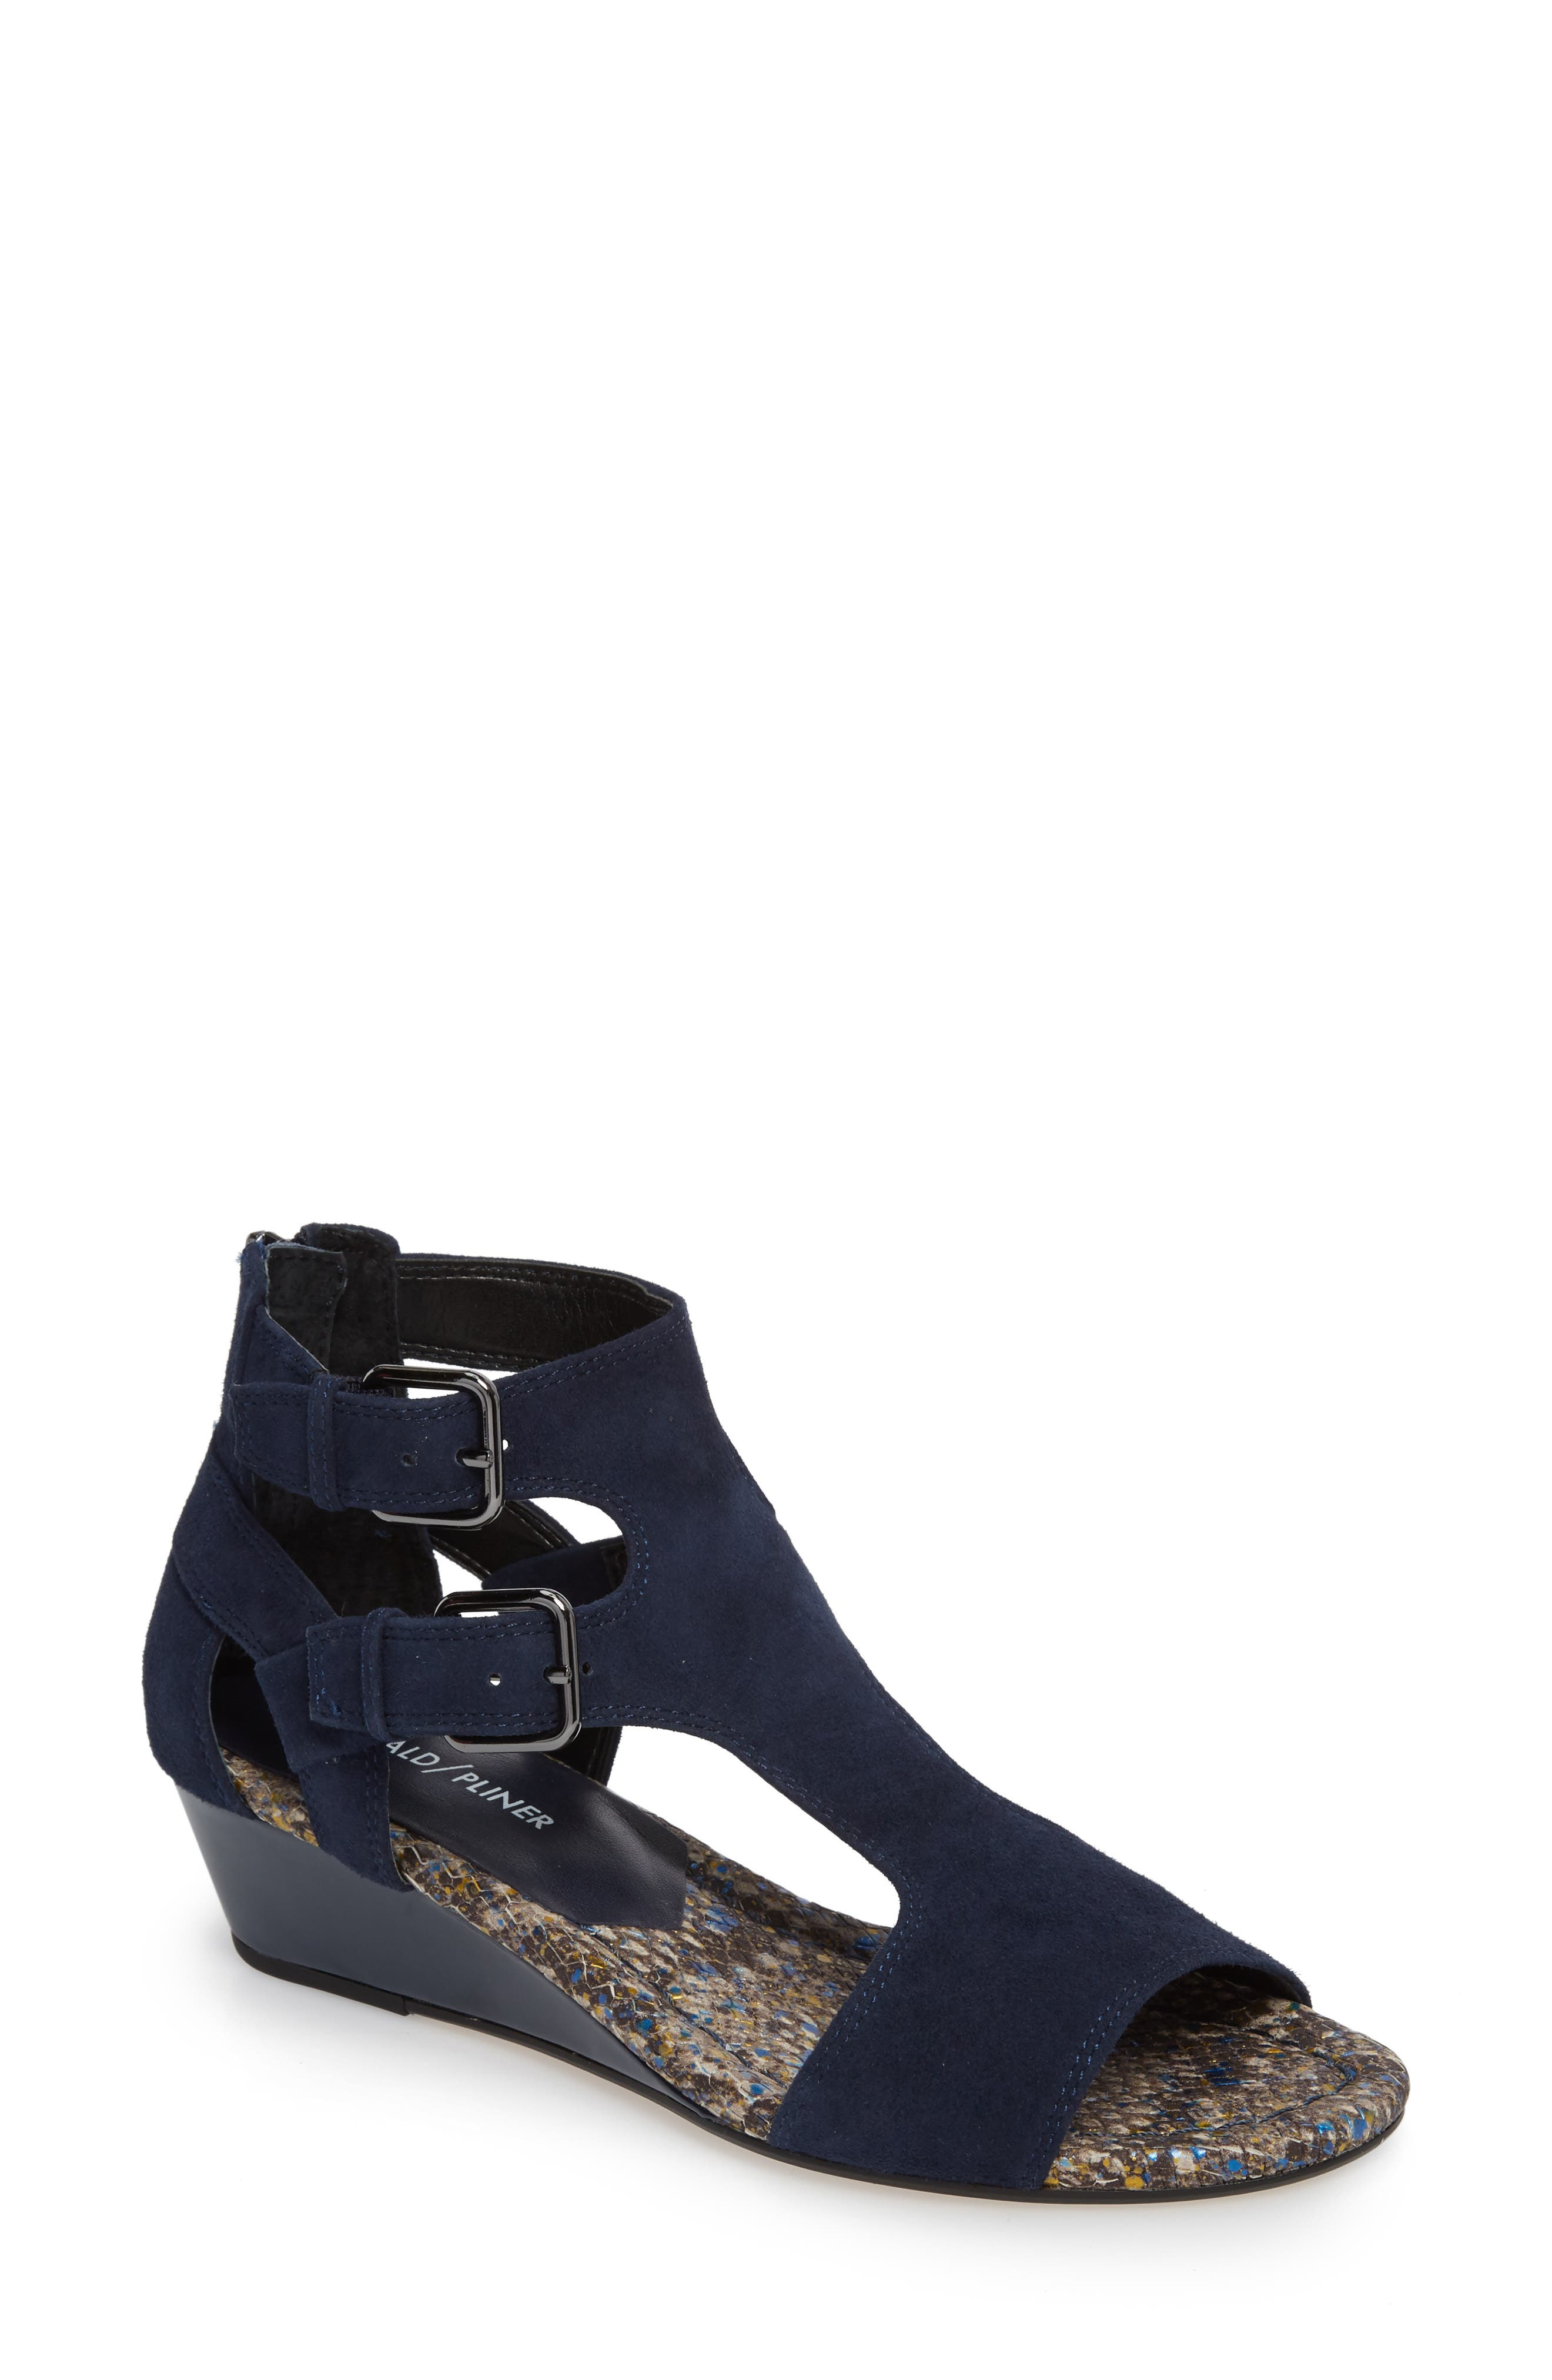 Alternate Image 1 Selected - Donald Pliner Eden II Wedge Sandal (Women)